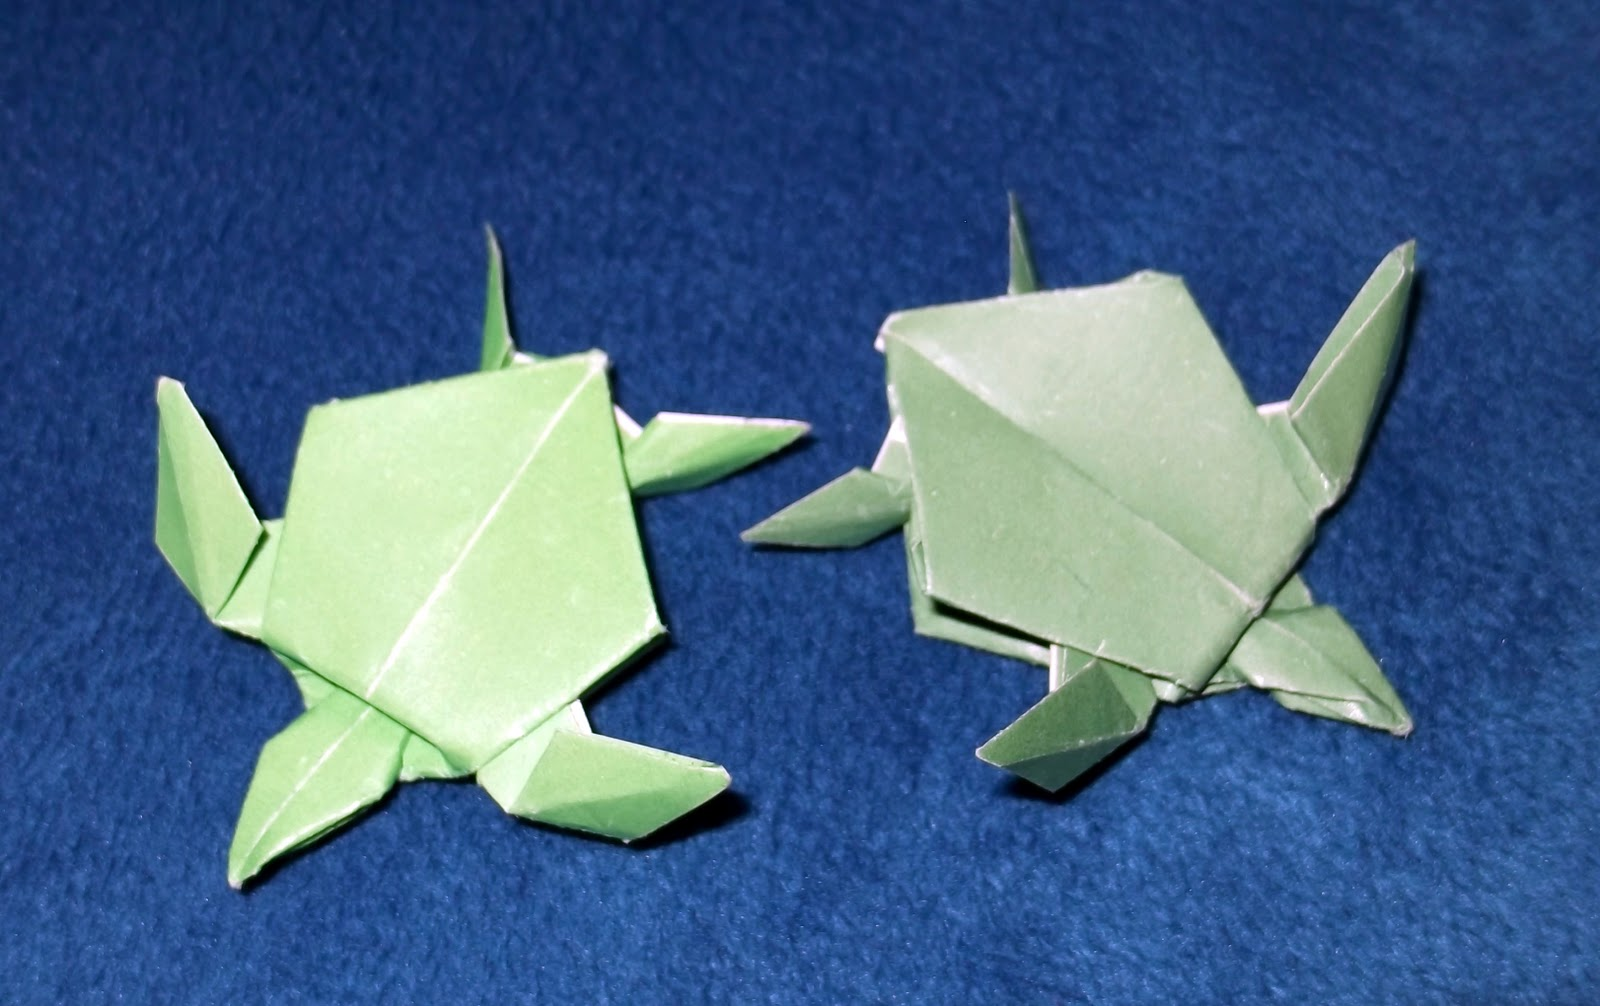 paper origami turtle diagram 2 way switch wiring australia library tortuga de